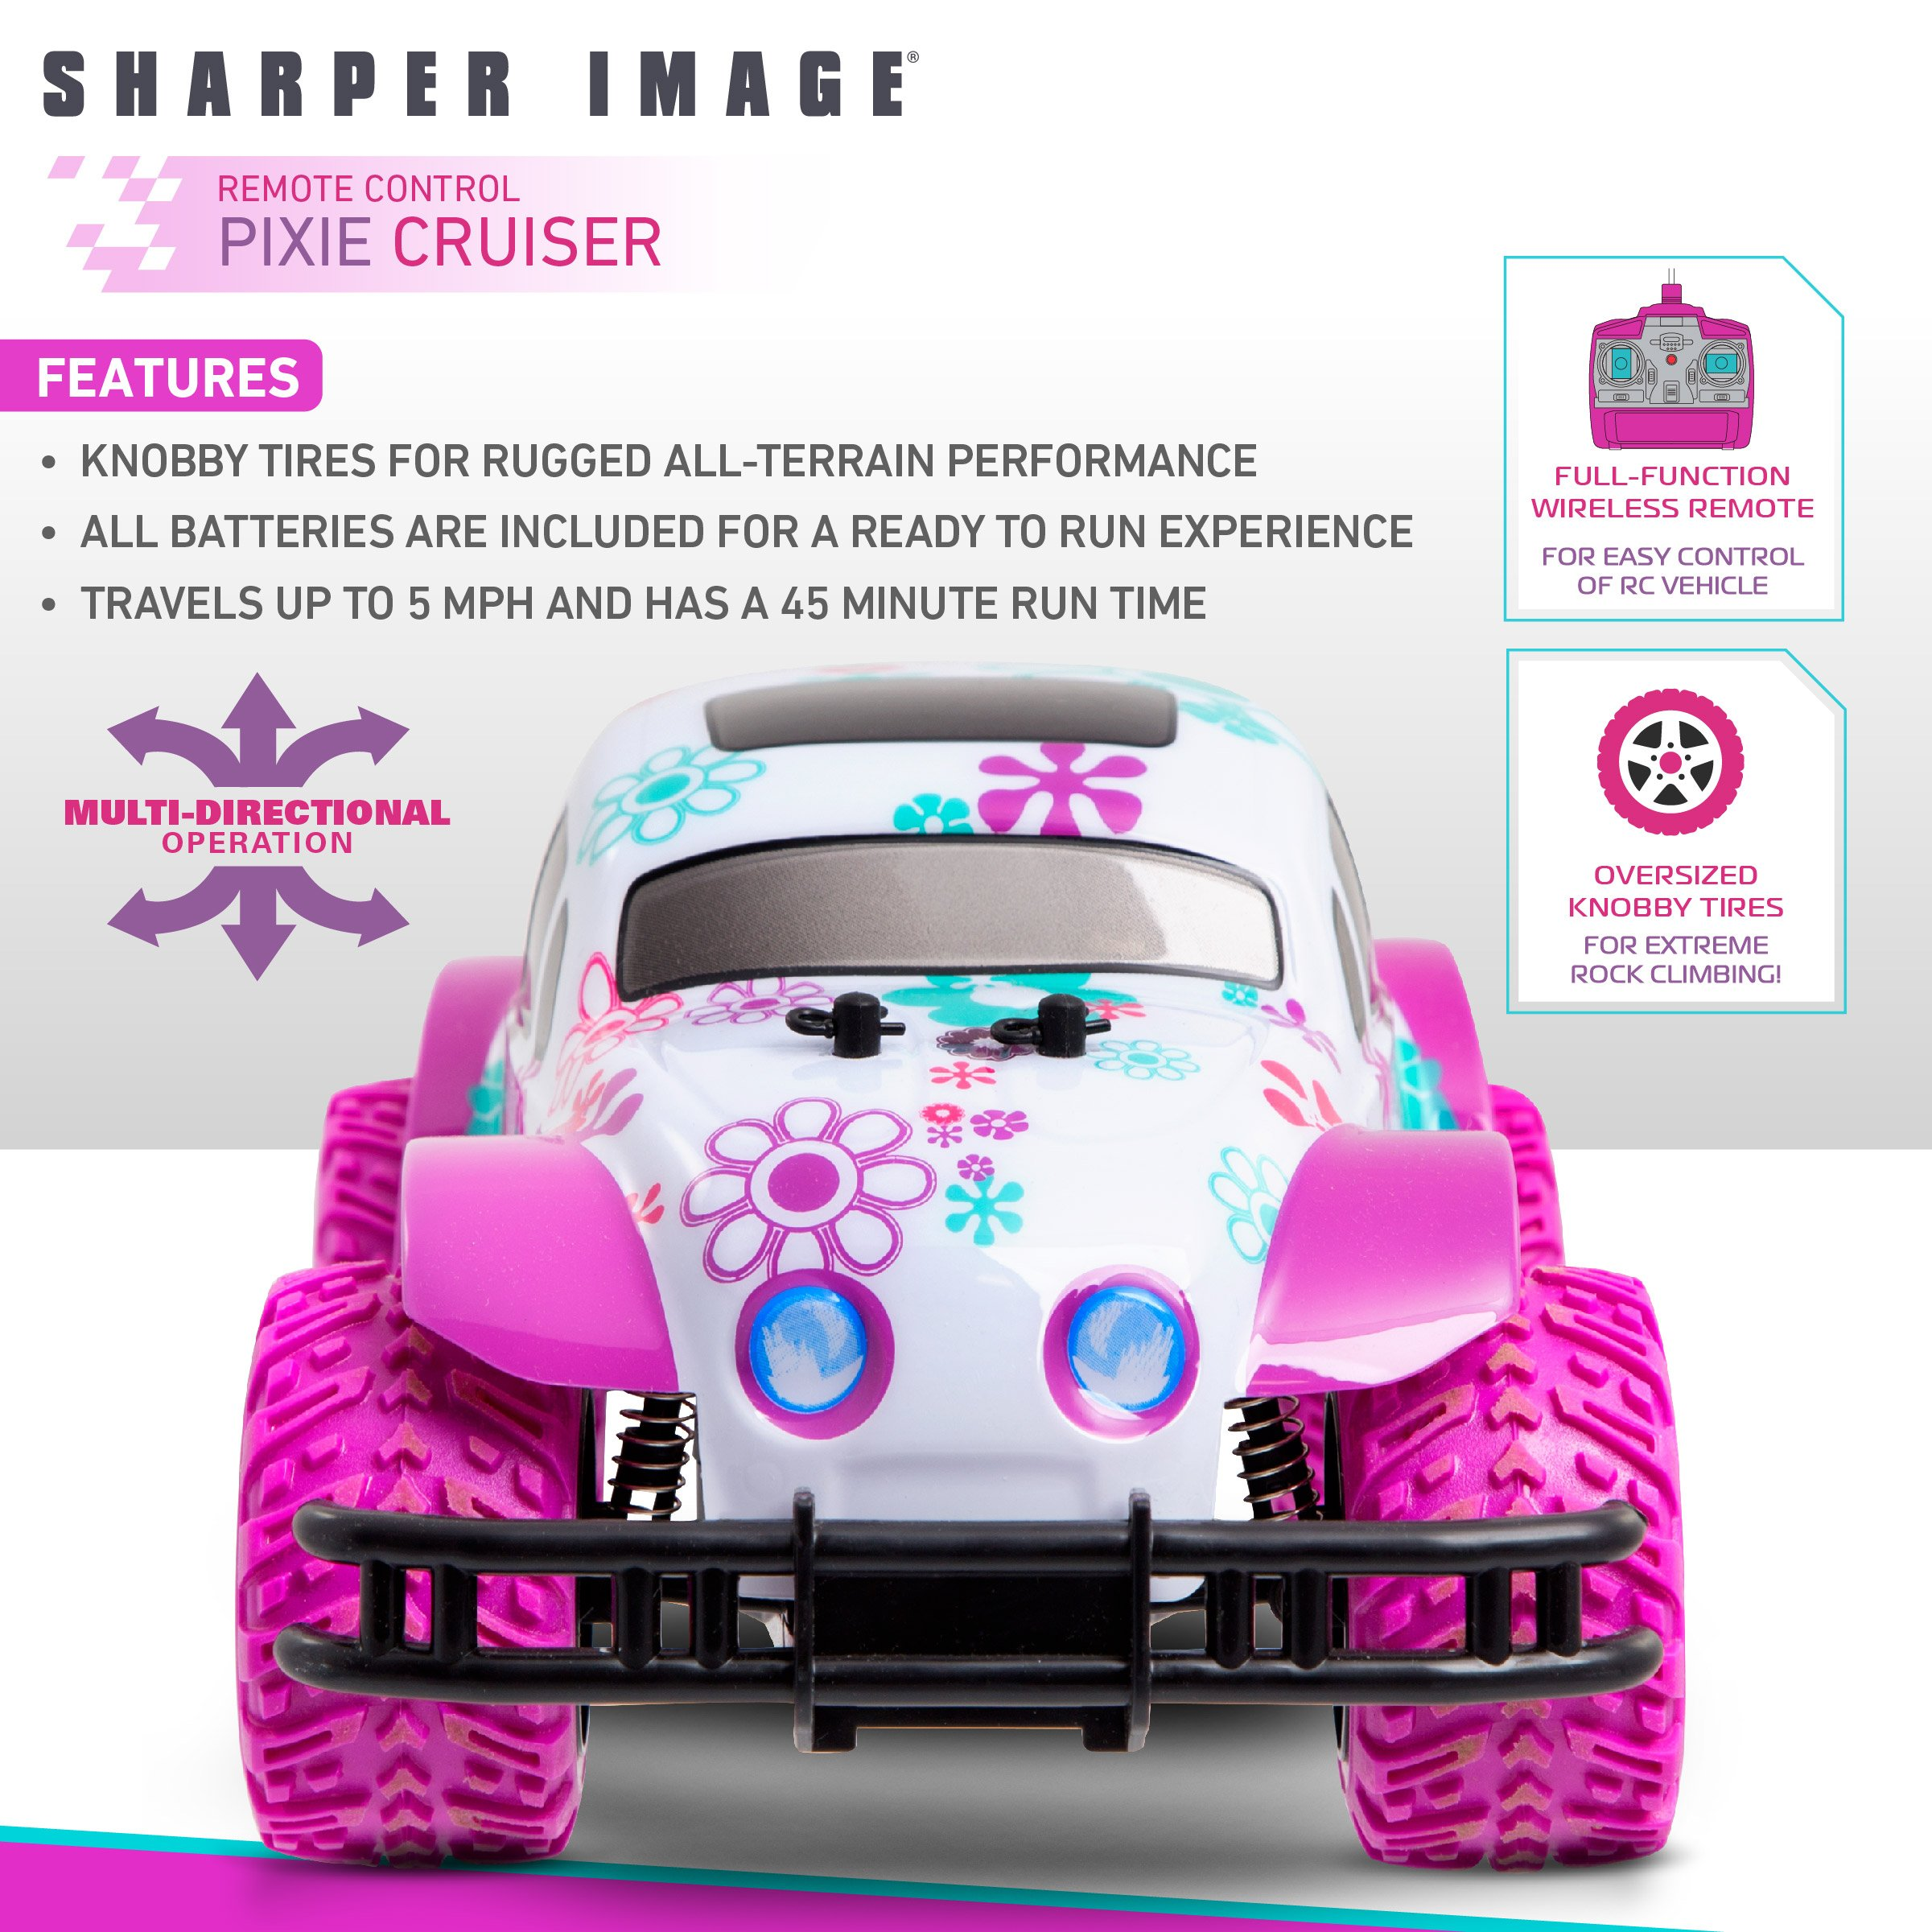 SHARPER IMAGE Pixie Cruiser Pink and Purple RC Remote Control Car Toy for Girls with Off-Road Grip Tires; Princess Style Big Buggy Crawler w/ Flowers Design and Shocks, Race Up to 5 MPH, Ages 6 Year + by Sharper Image (Image #2)